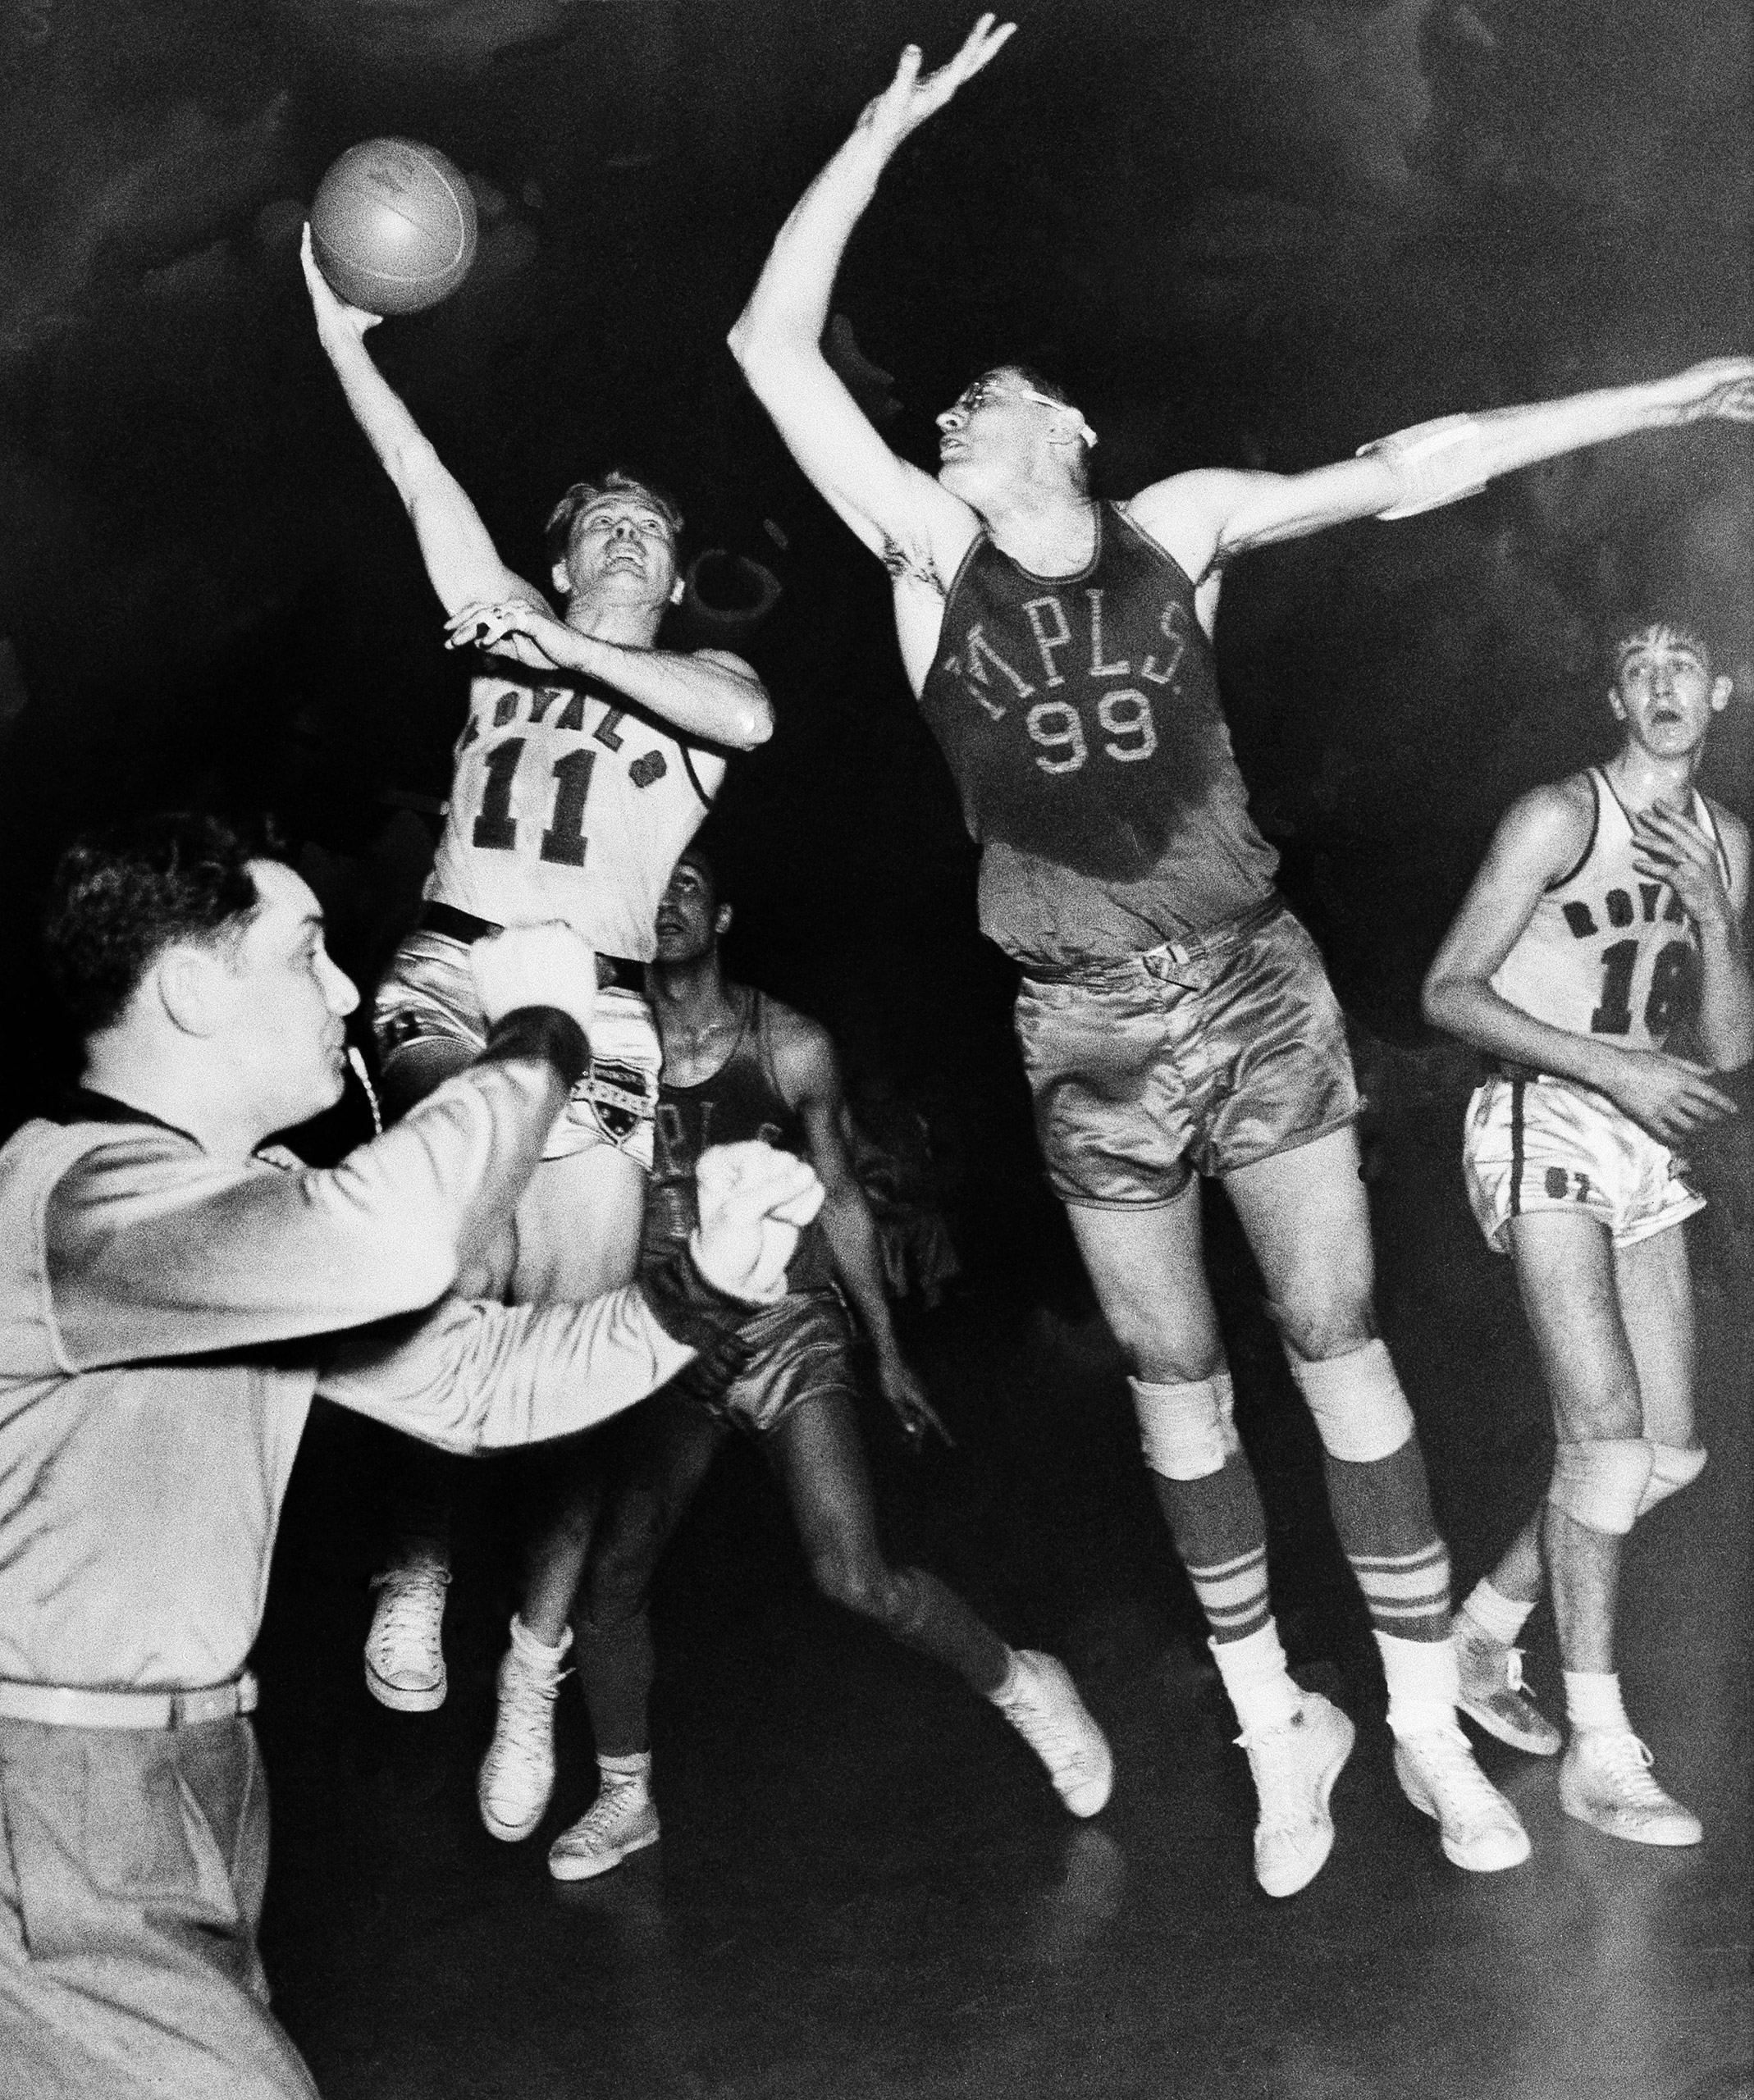 George Mikan (99), star Minneapolis Lakers center, breaks up a shot by Bob Davies, Rochester Royals guard (11) in the decisive game of the National Basketball Association's Western Division playoffs,  April 4, 1951 in Rochester, N.Y. Rochester, won, 80-75.